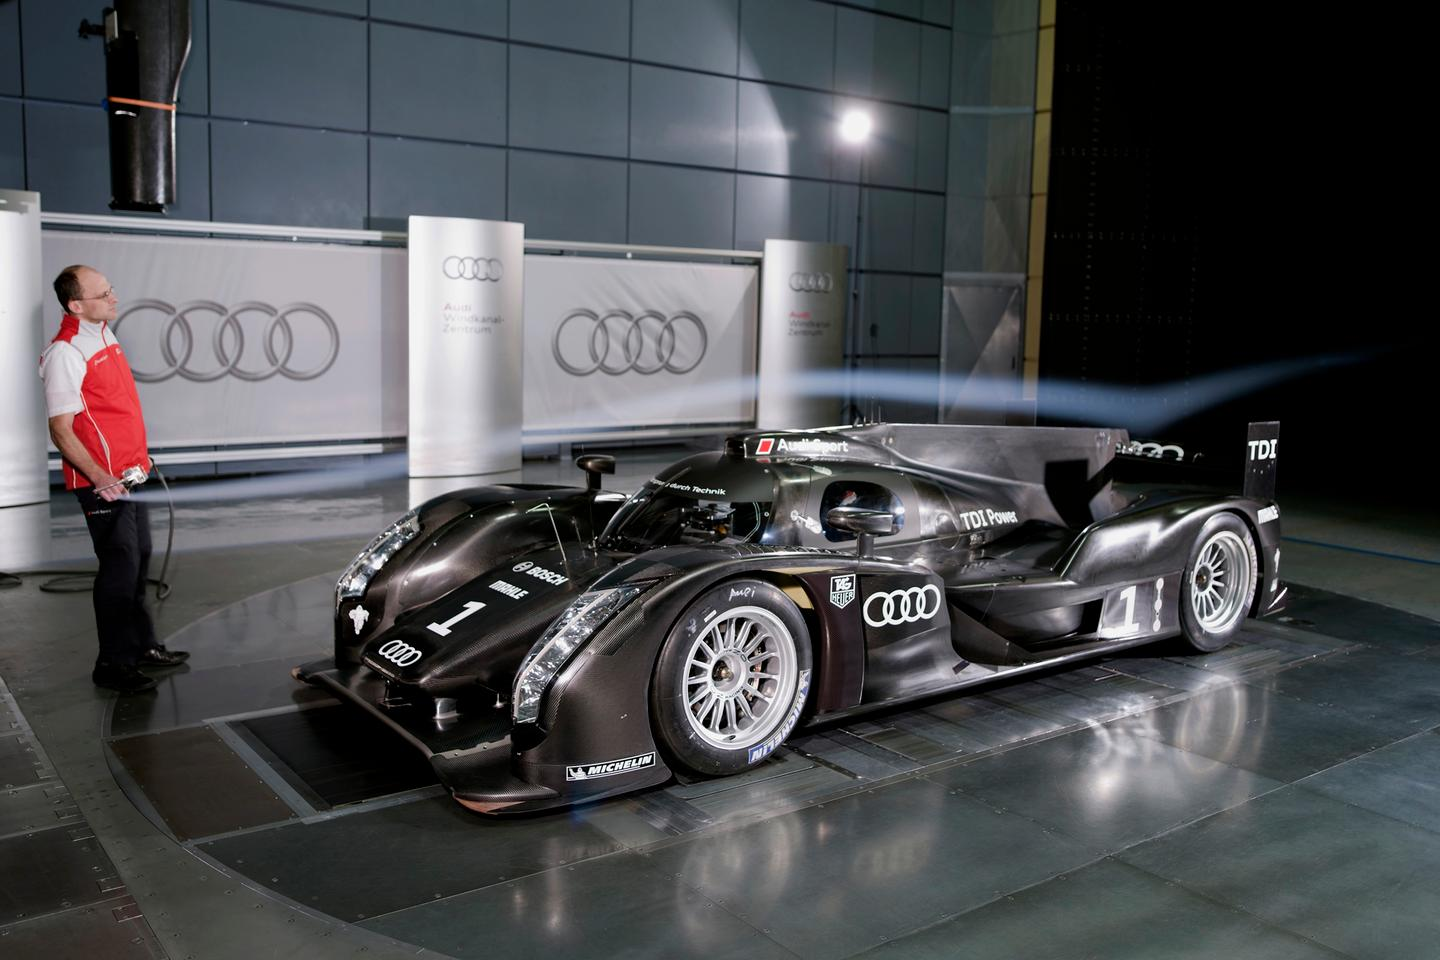 The new Audi R18 LMP1 sports car